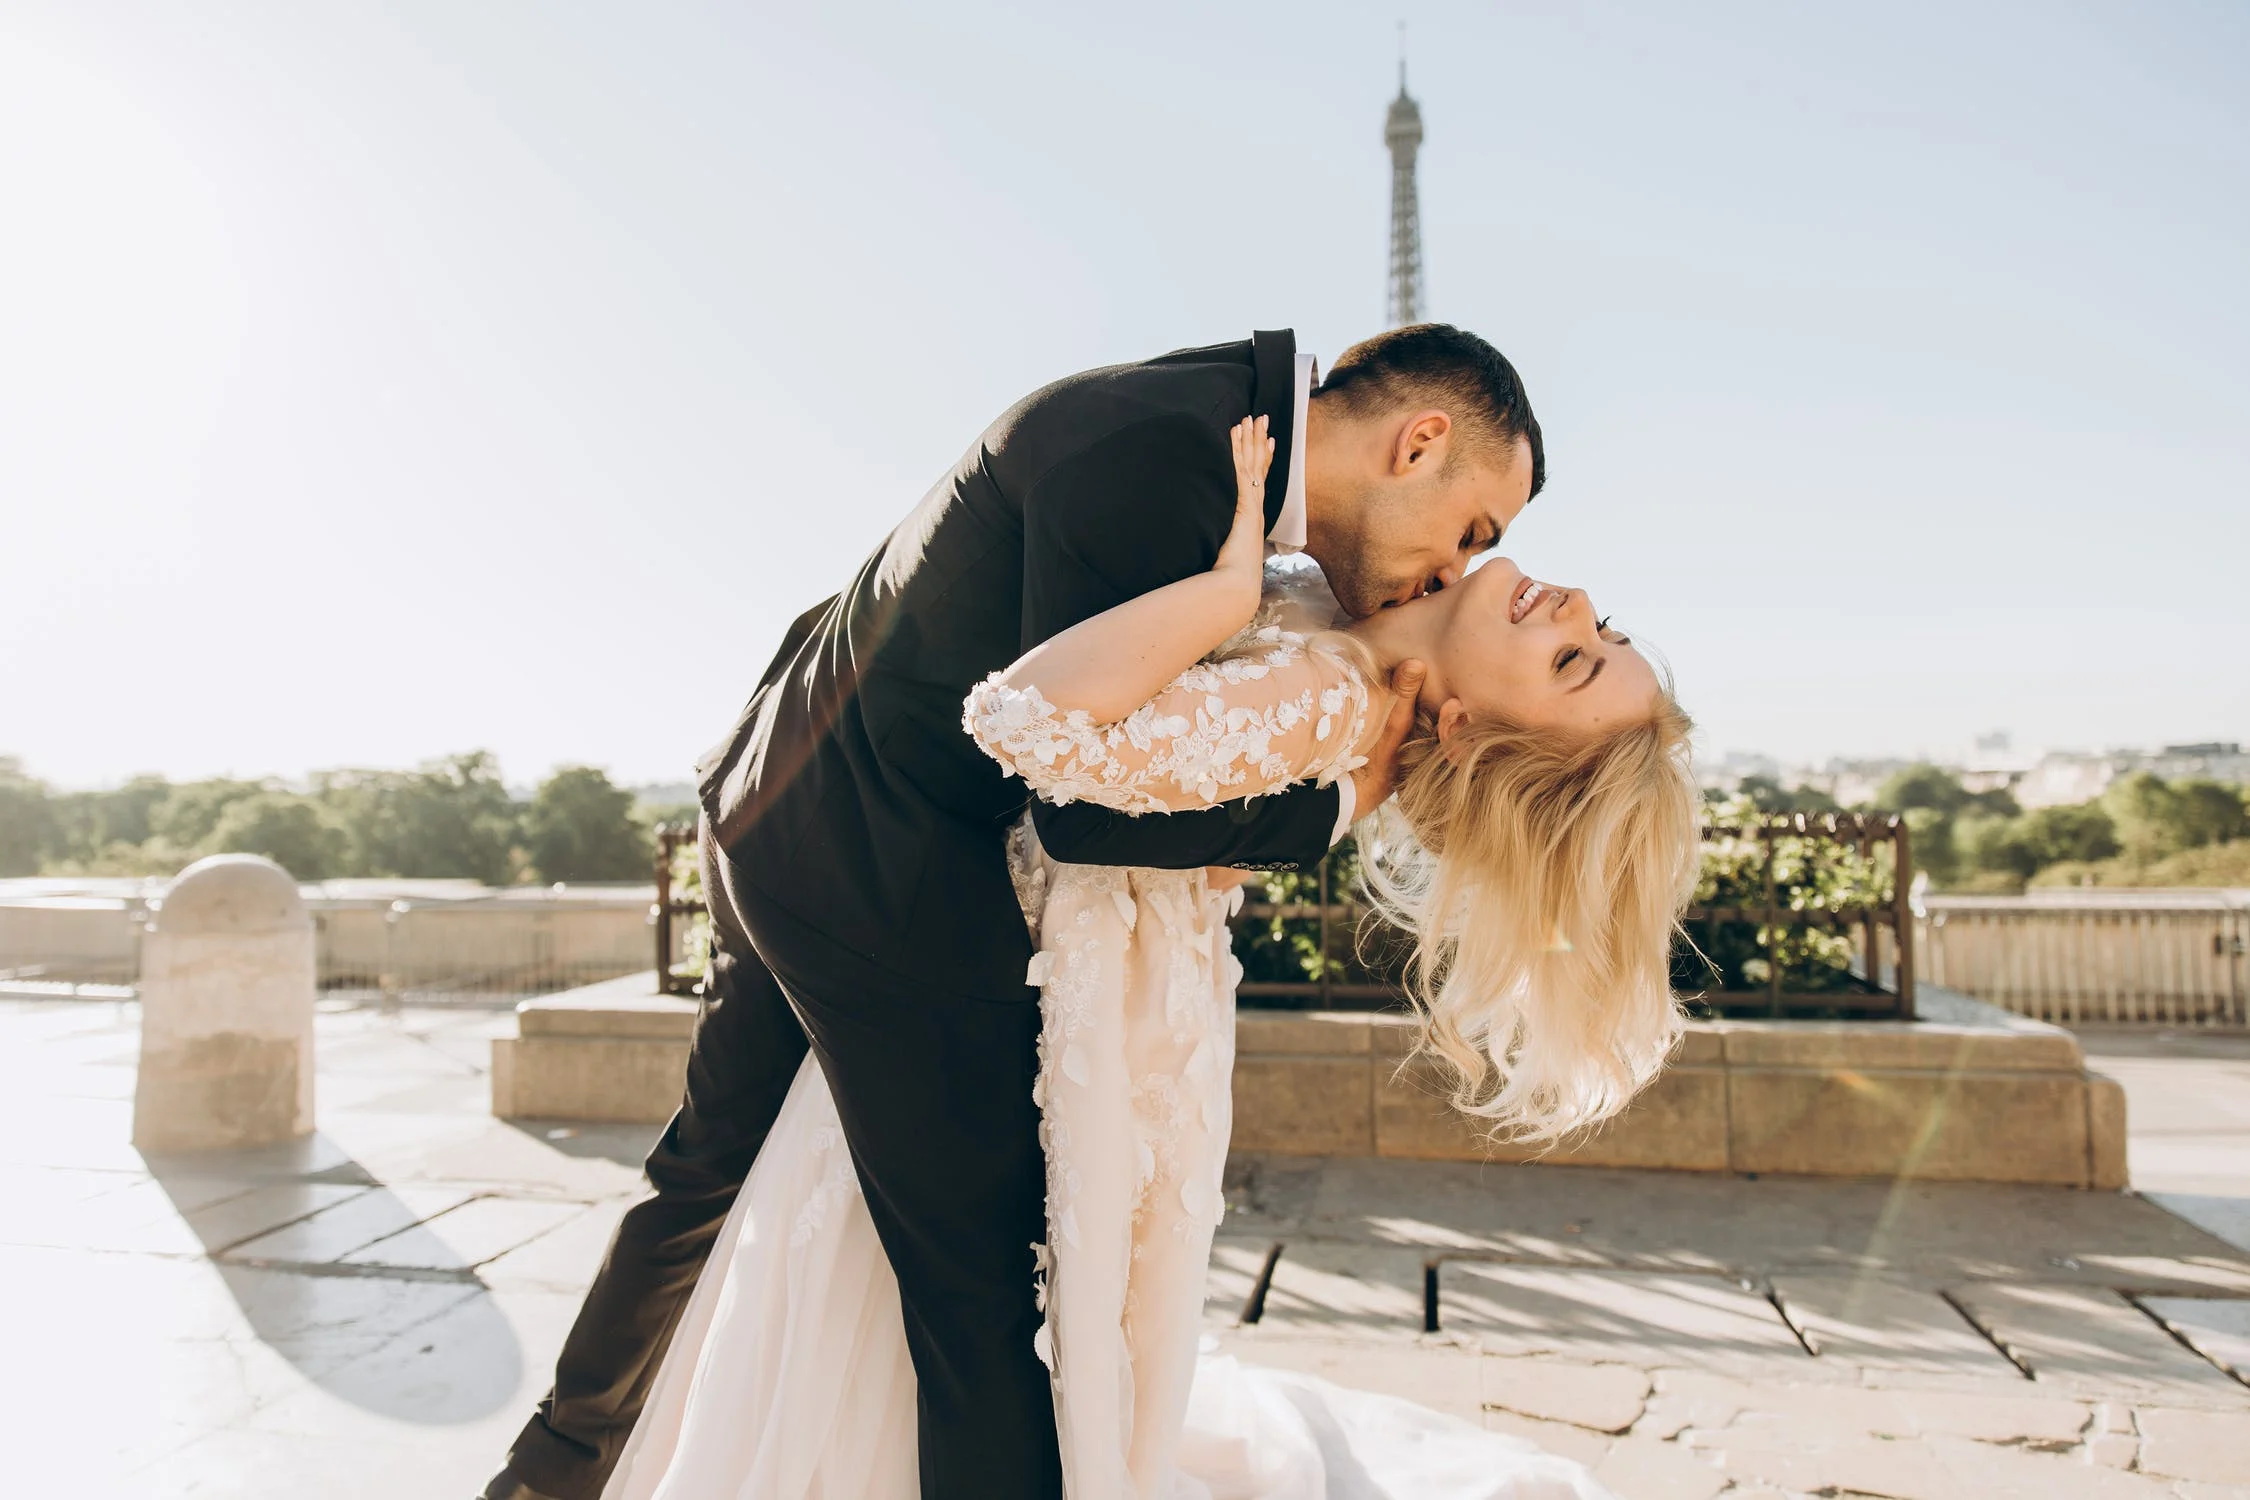 4 Stylish Tips That Will Make Your Elopement Wedding Stand Out